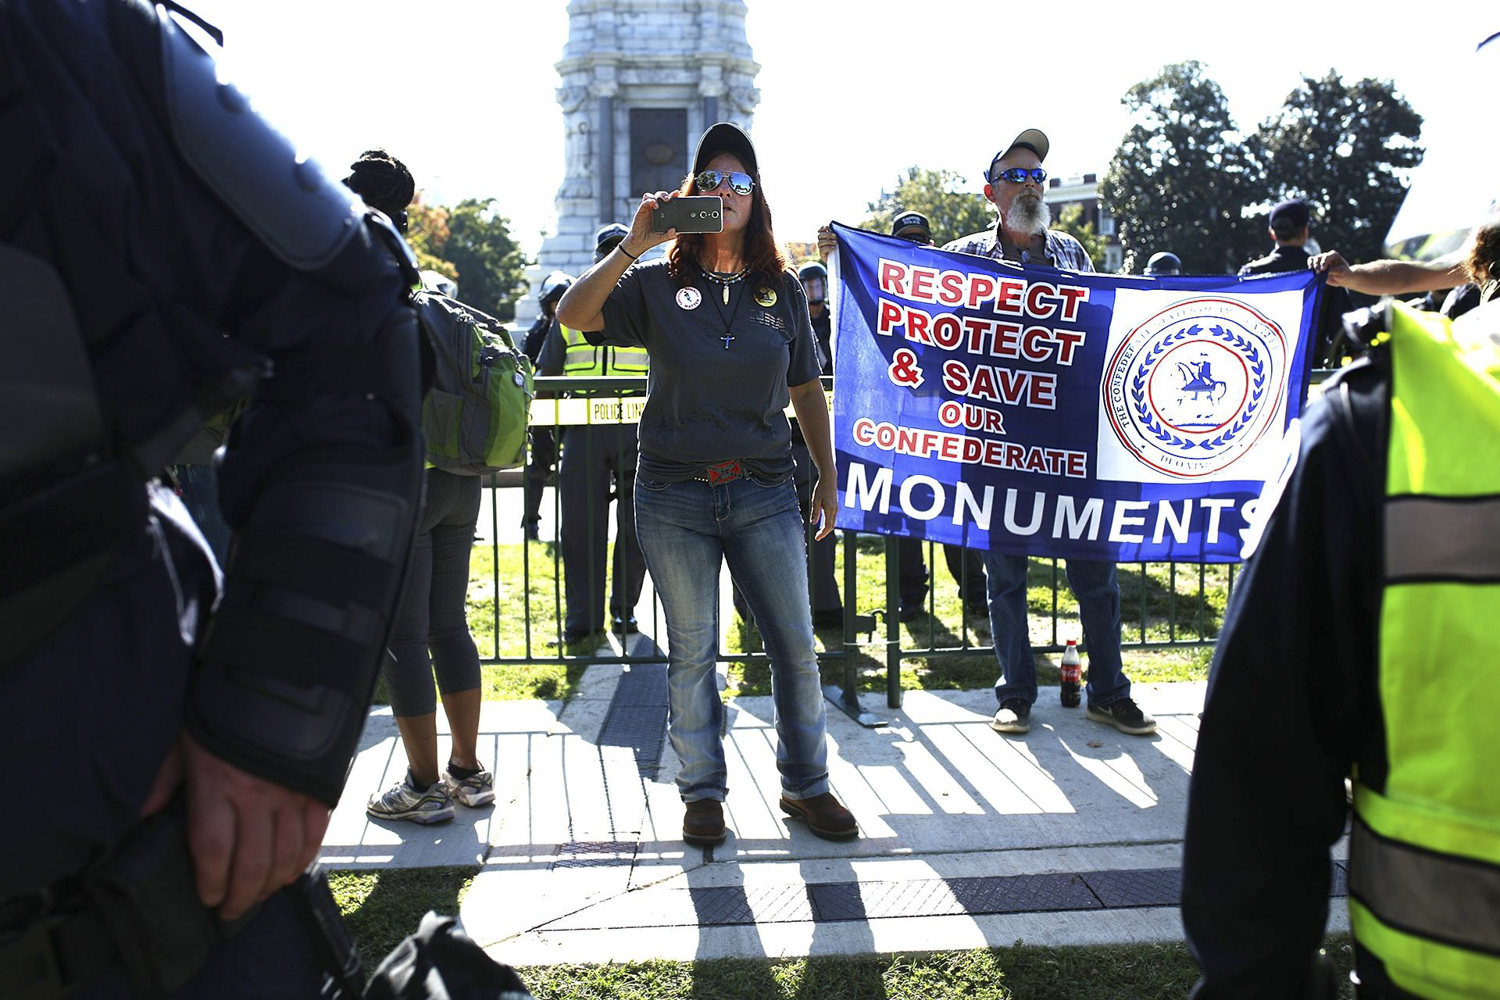 Tara Brandau, center, and other members of CSA II: The New Confederate States of America, rally while surrounded by local and state law enforcement in the shadow of the Robert E. Lee statue on Monument Avenue in Richmond on Saturday, Sept. 16, 2017. [Scott P. Yates/progress-index.com]